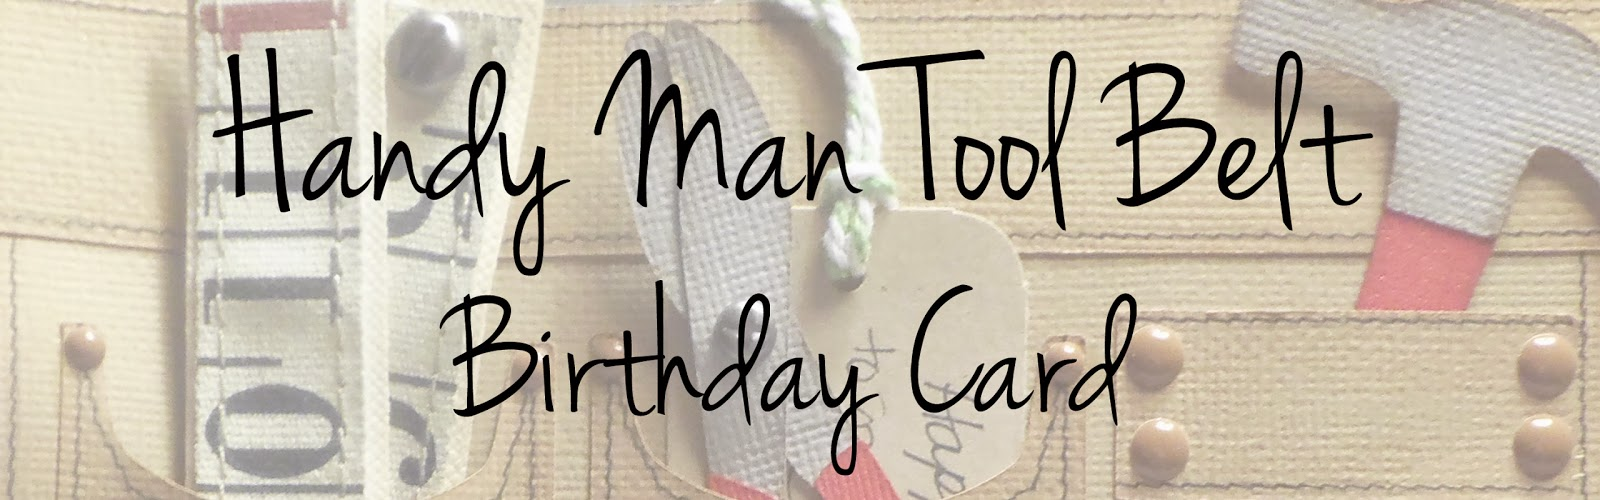 handmade card, cardmaking, card making, tool belt, tools, hammer, pliers, tape measure, ruler tape, enamel dots, distress ink, cardstock, scrapbooking, crafting, paper crafting, brads, interactive, movable parts, die cuts, Silhouette, Doodlebug, Tim Holtz, Bazzill, American Crafts